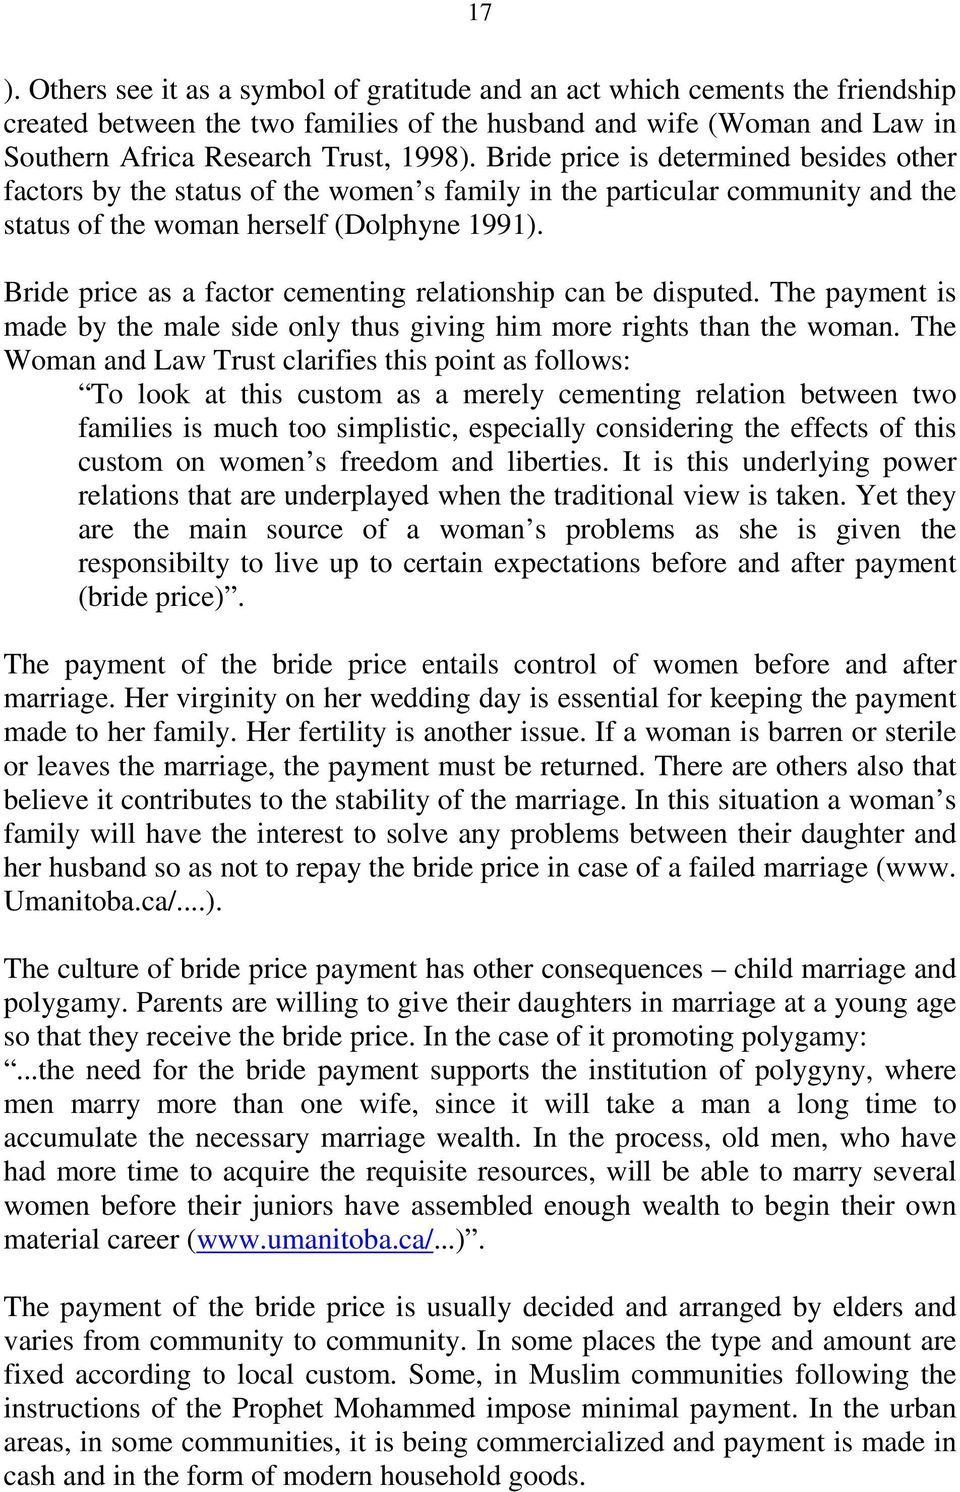 Bride price as a factor cementing relationship can be disputed. The payment is made by the male side only thus giving him more rights than the woman.